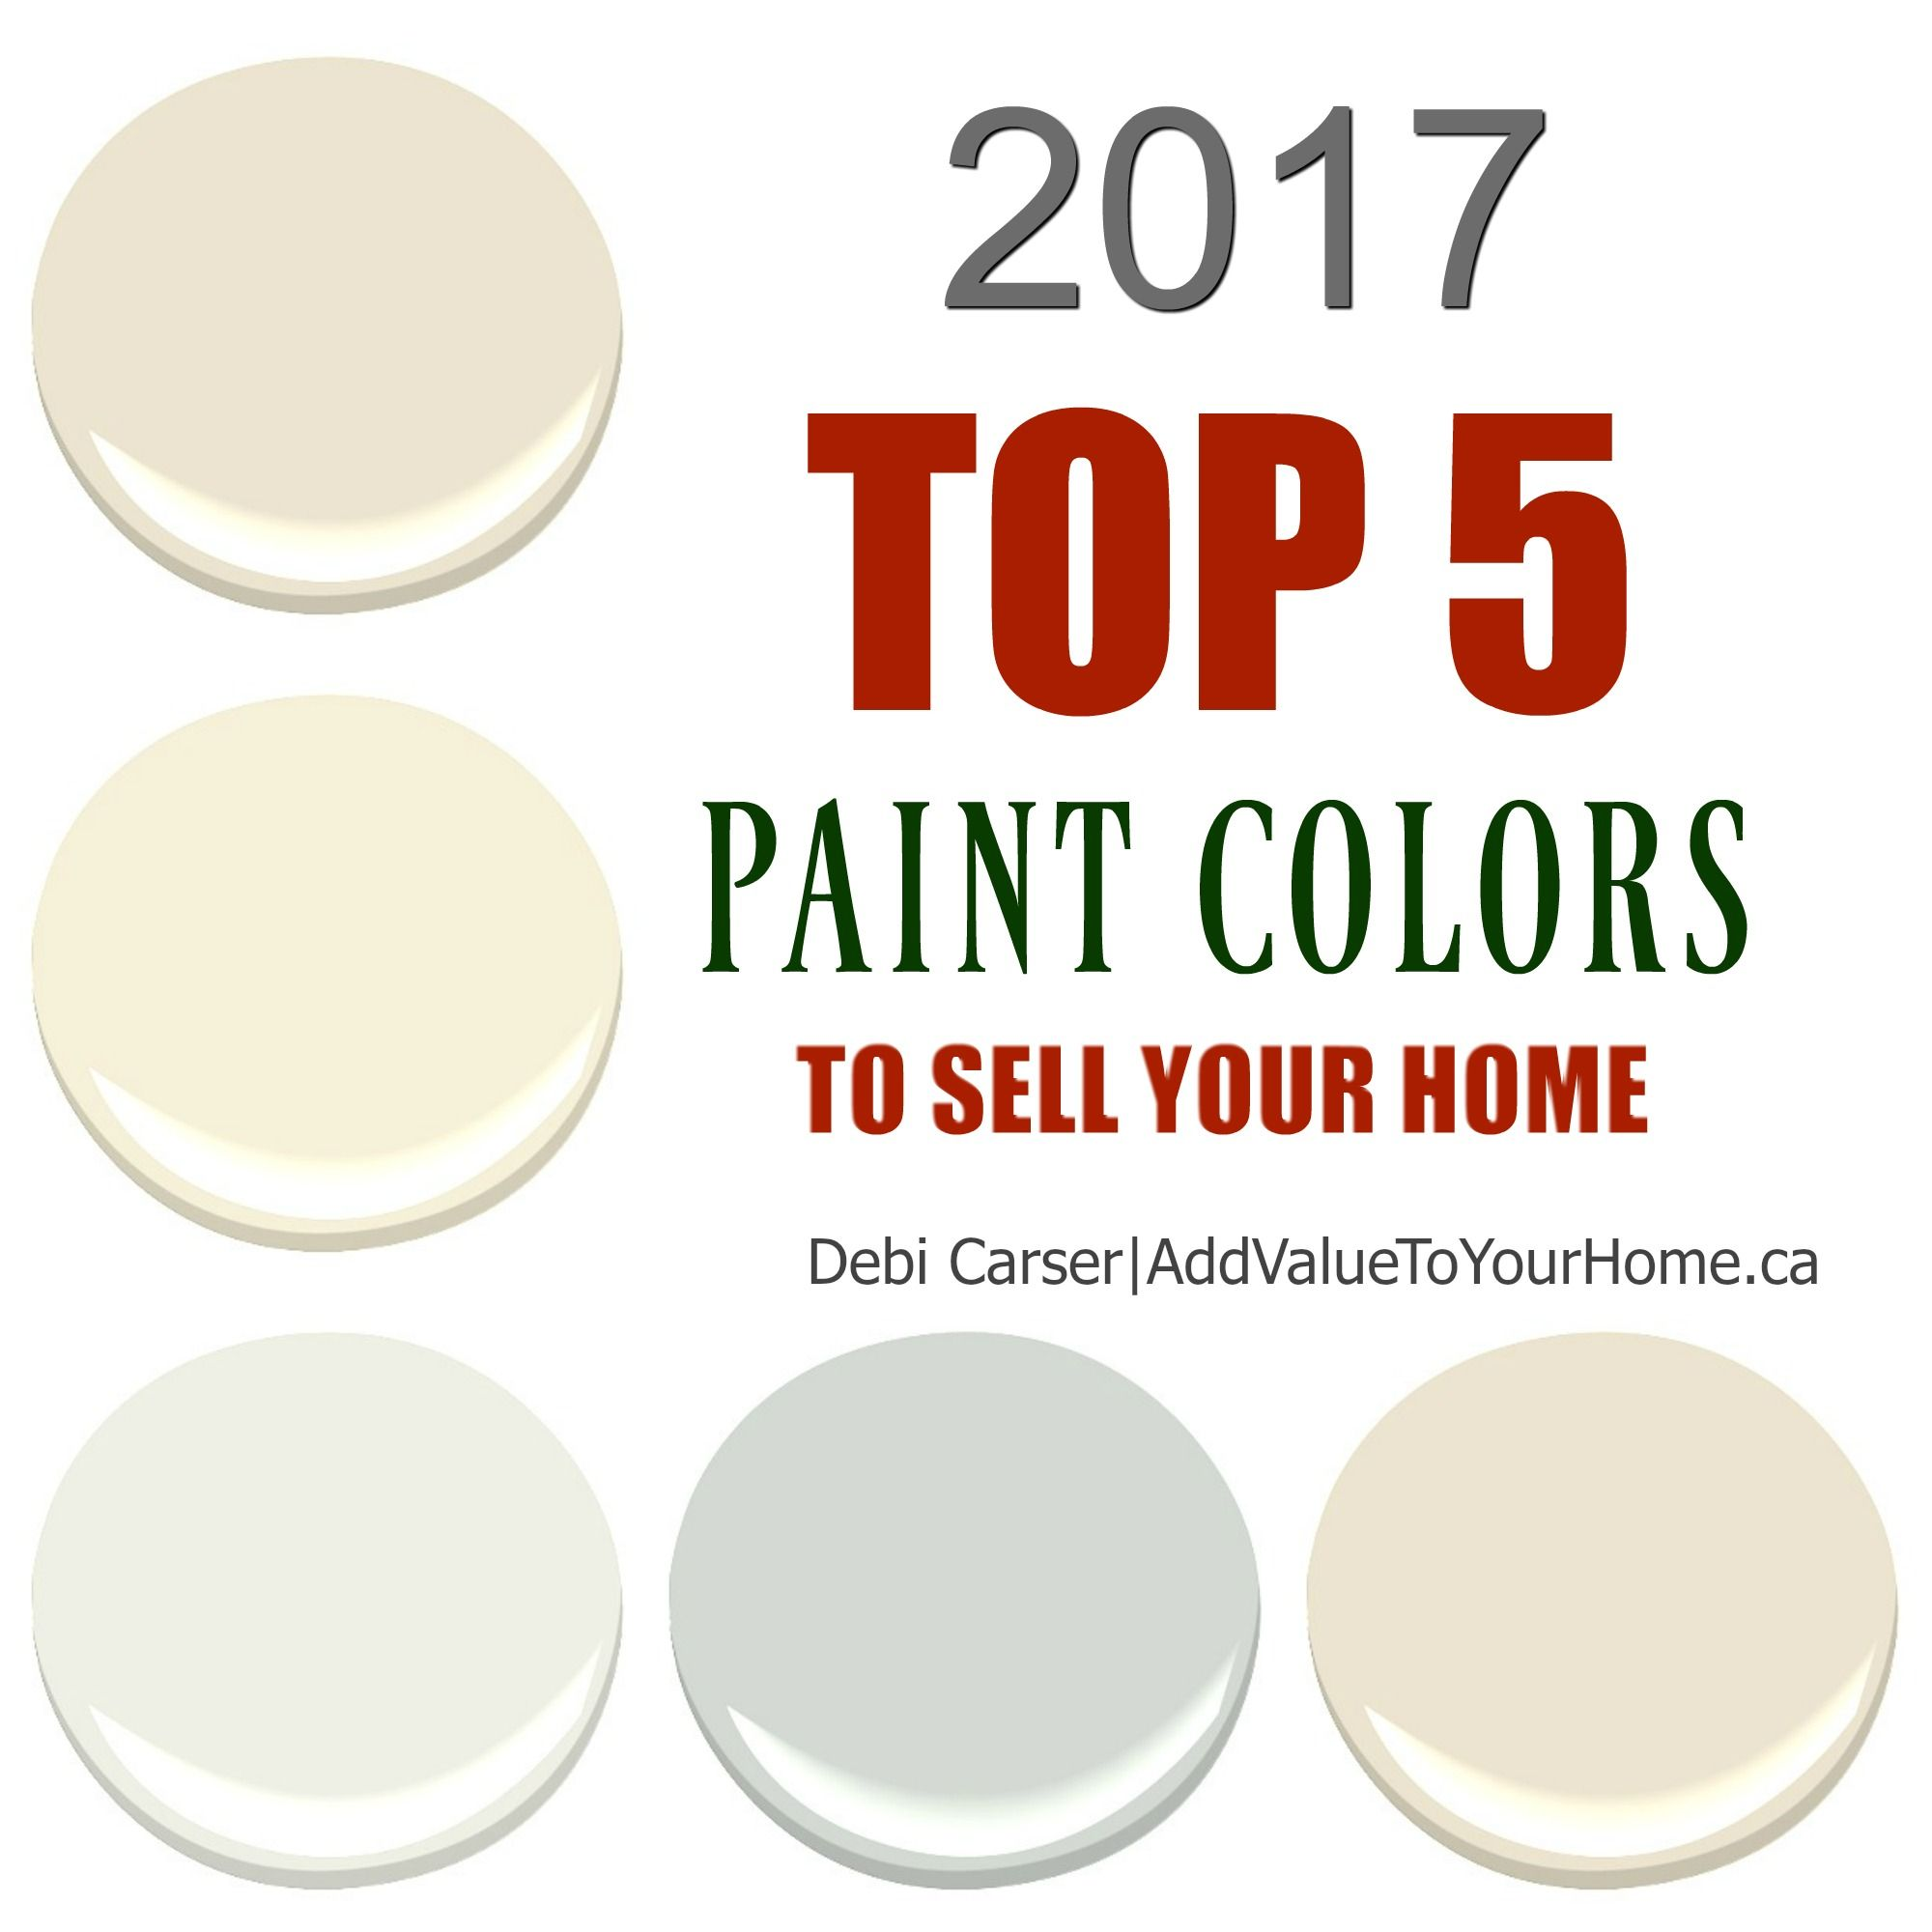 2017 top 5 paint colors to sell your home find out what ForPaint Colors To Sell Your Home 2017